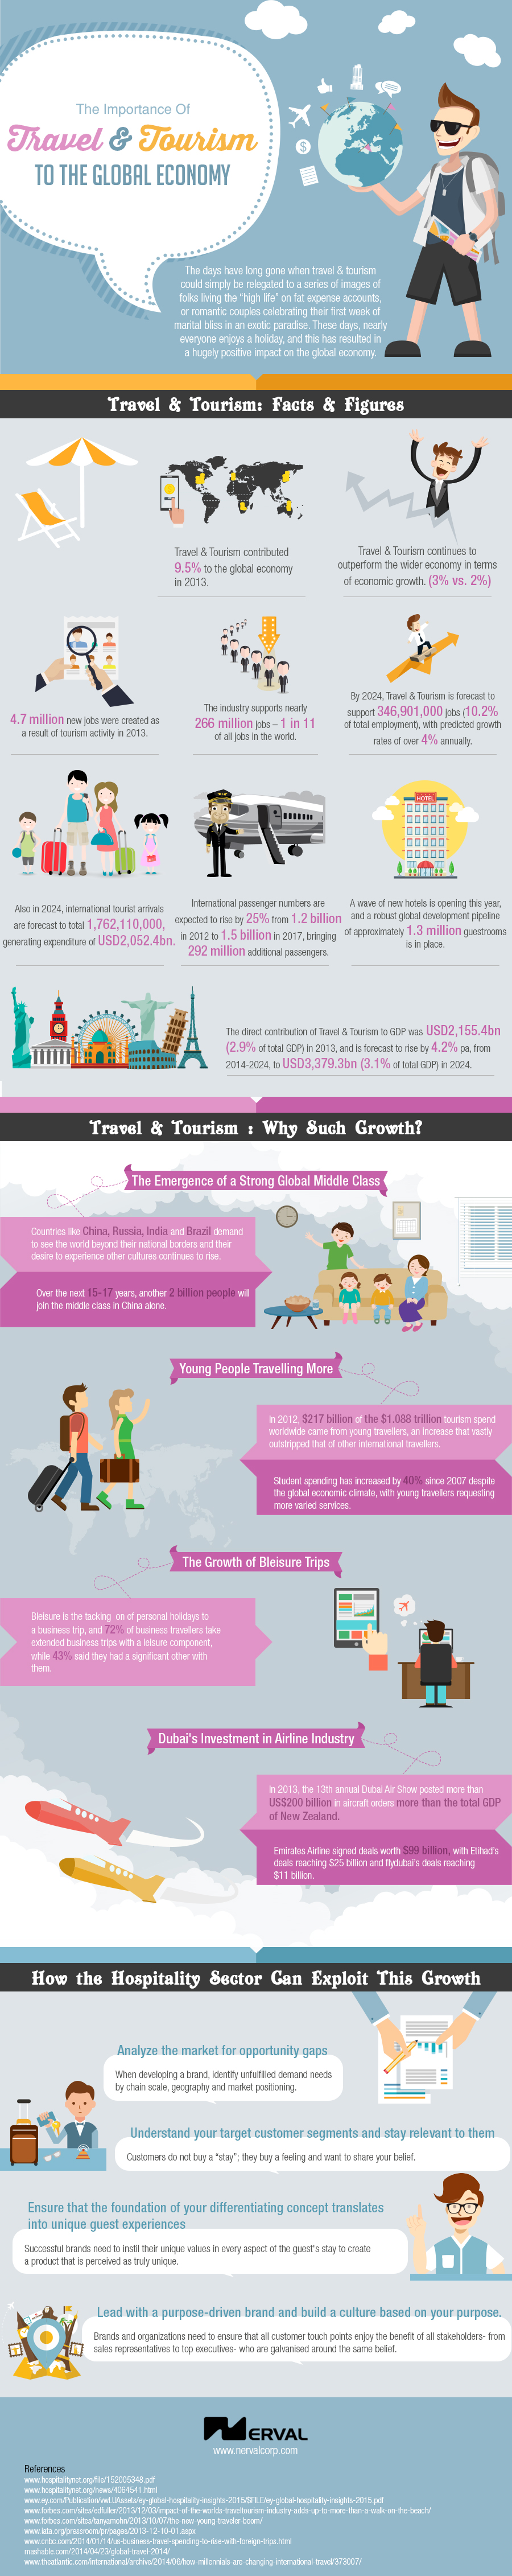 The-Importance-of-Travel-and-Tourism-to-the-Global-Economy